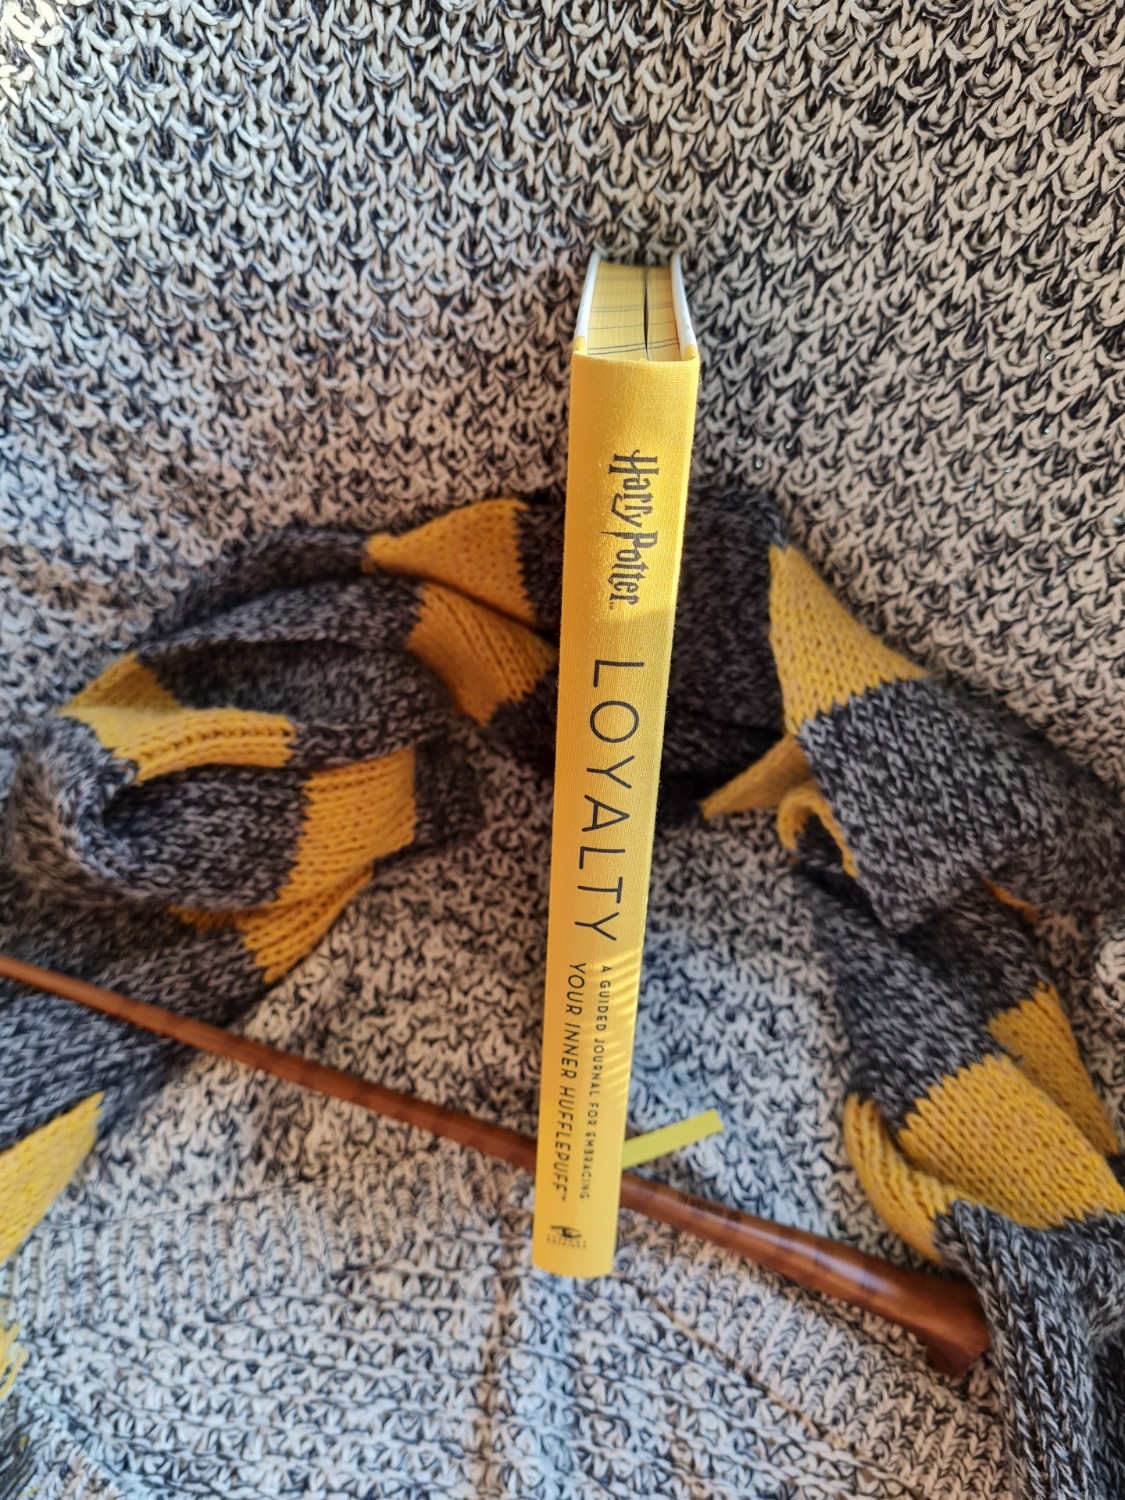 """Clothbound spine of """"Loyalty: A Guided Journal for Embracing Your Inner Hufflepuff"""" from Insight Editions"""